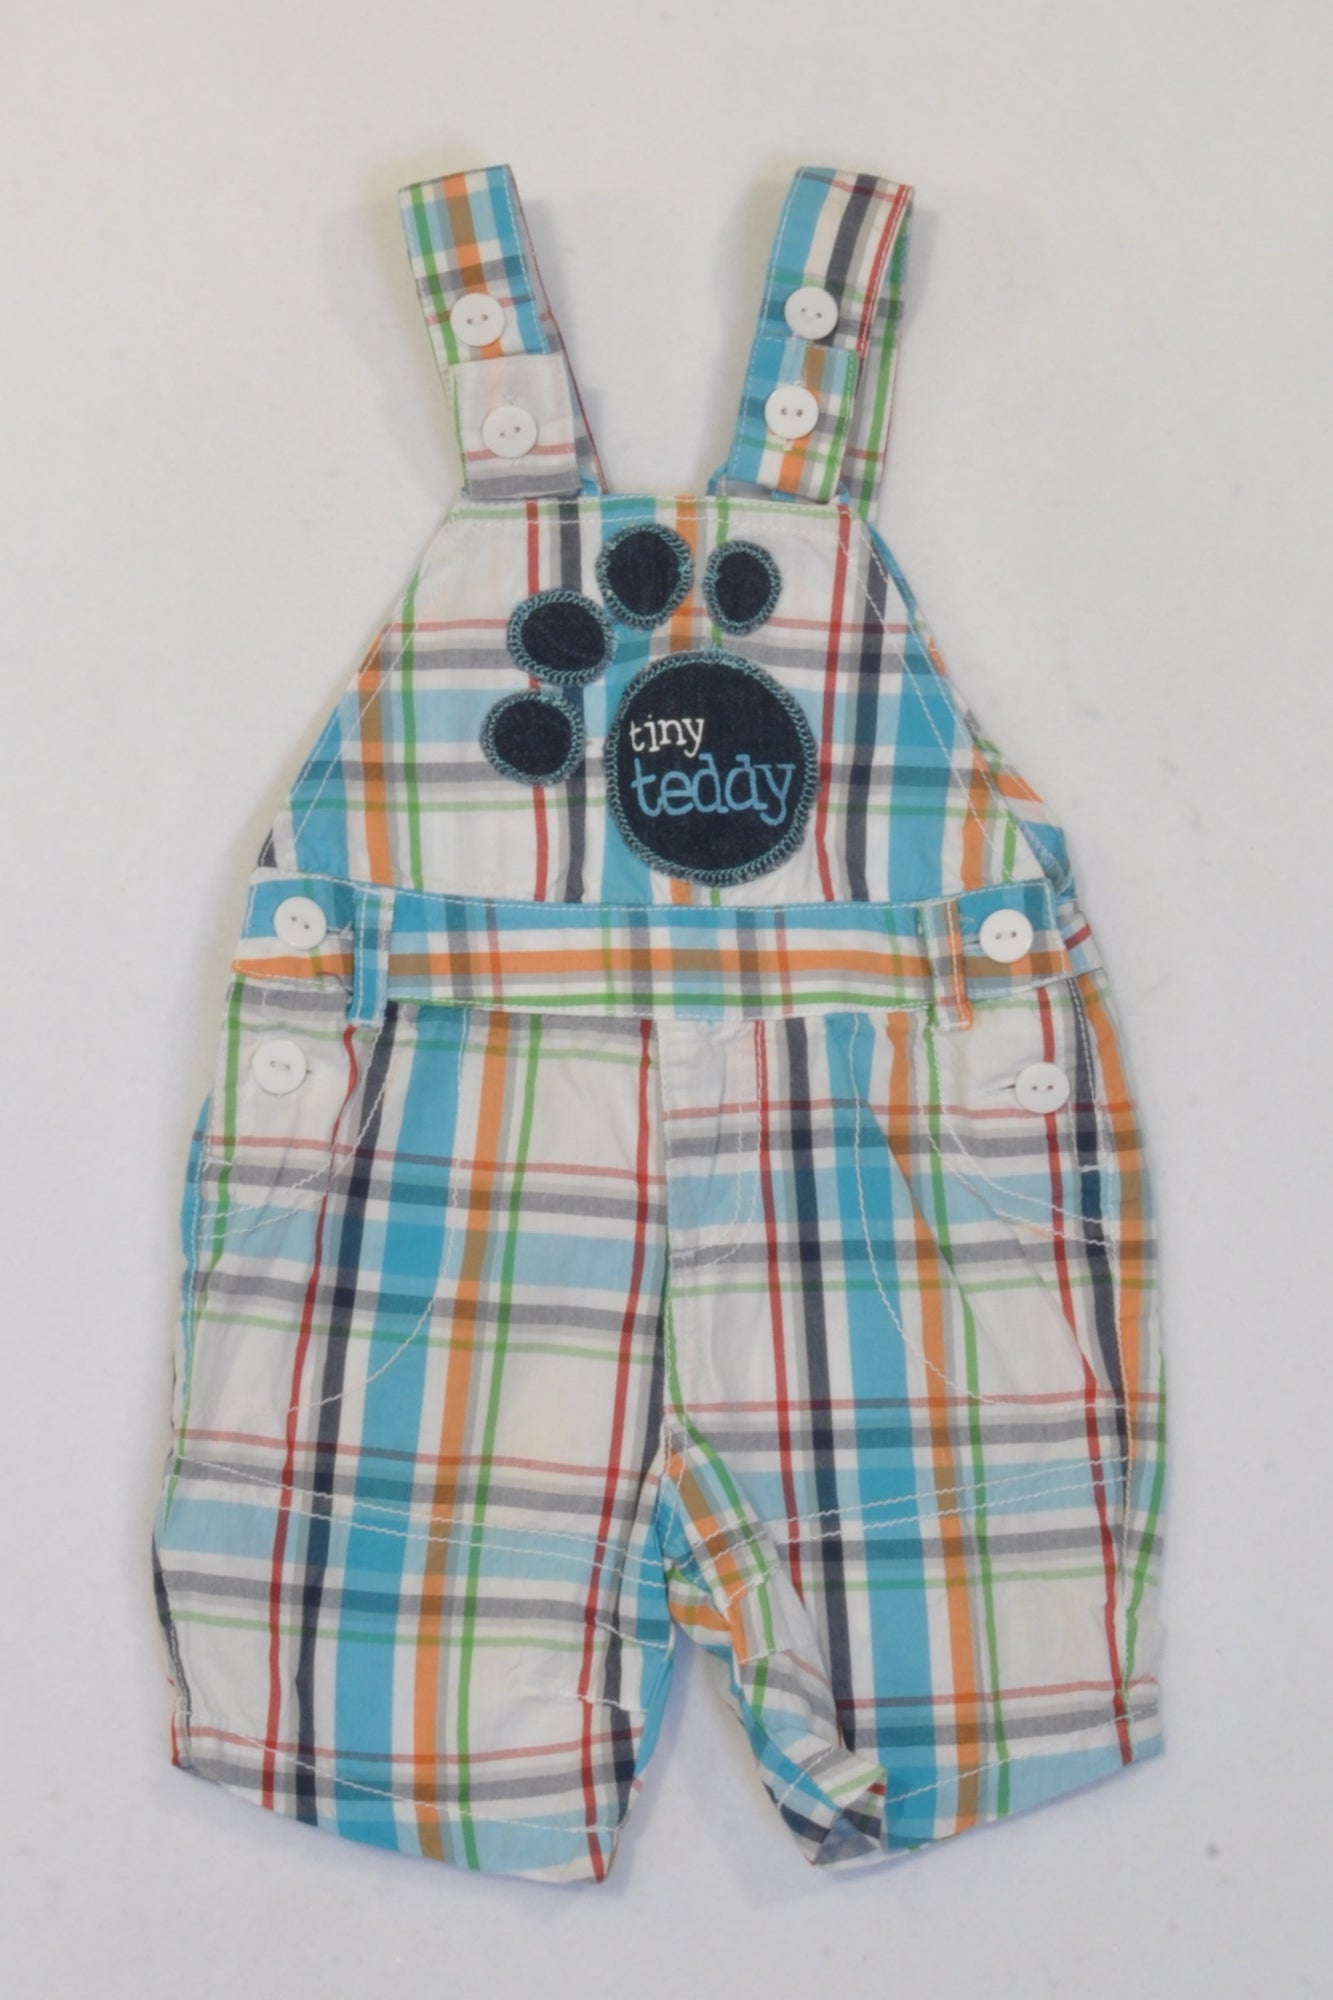 Multicolour Plaid Tiny Teddy Paw Dungarees Boys 0-3 months